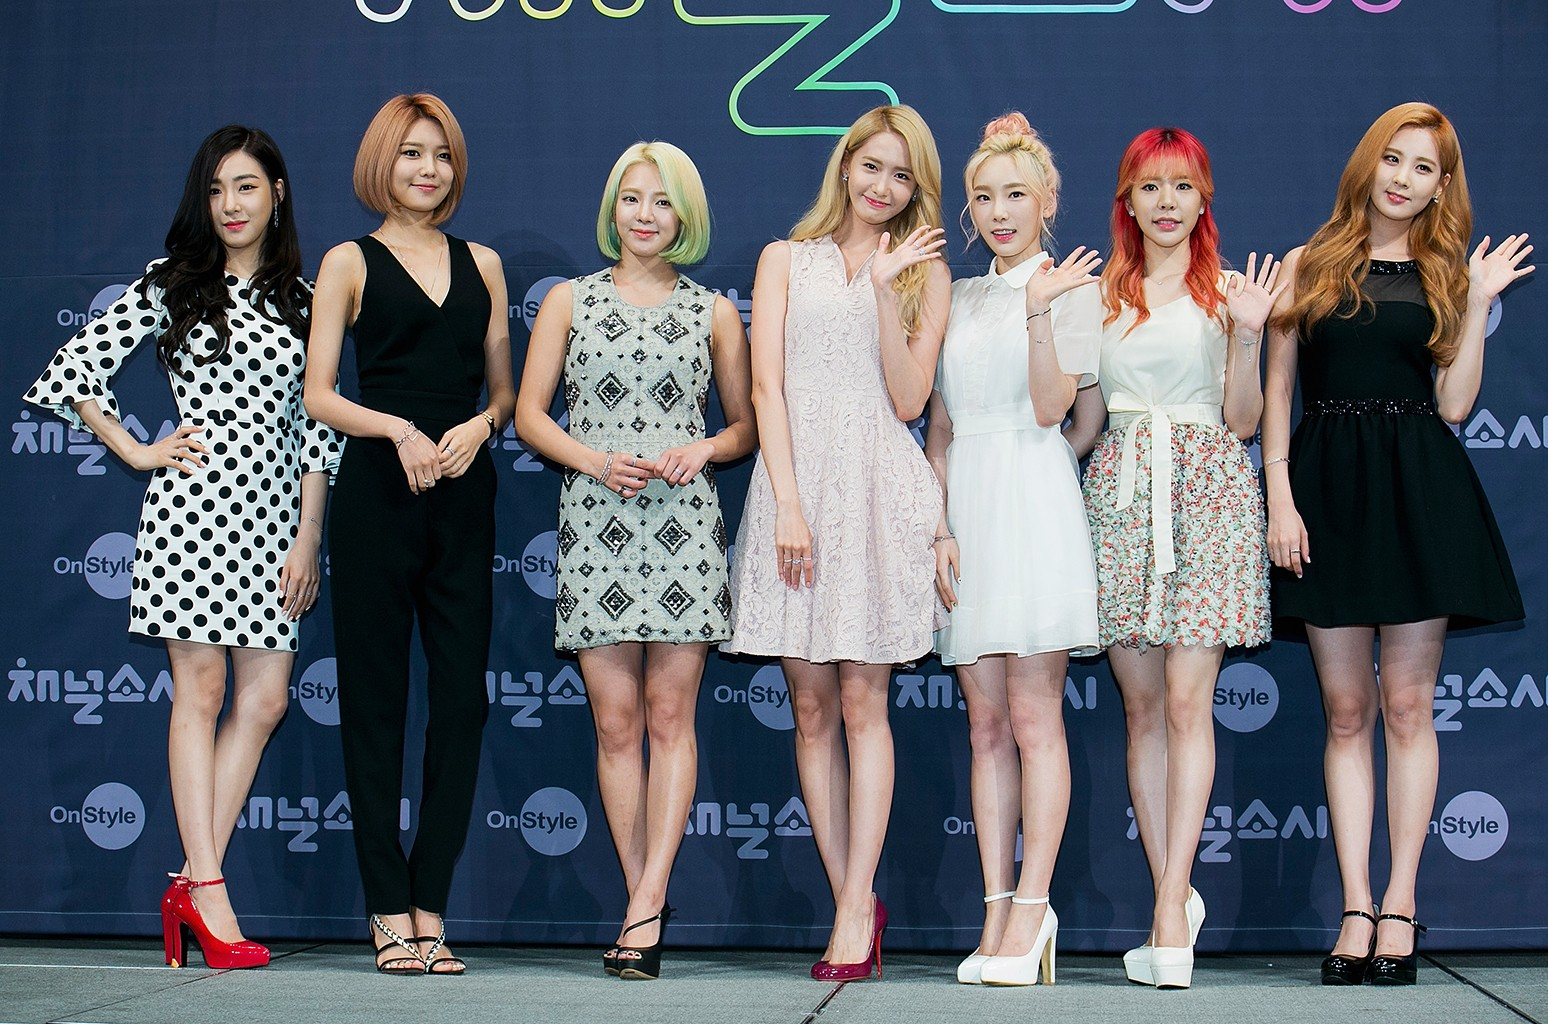 Girls' Generation photographed in Seoul